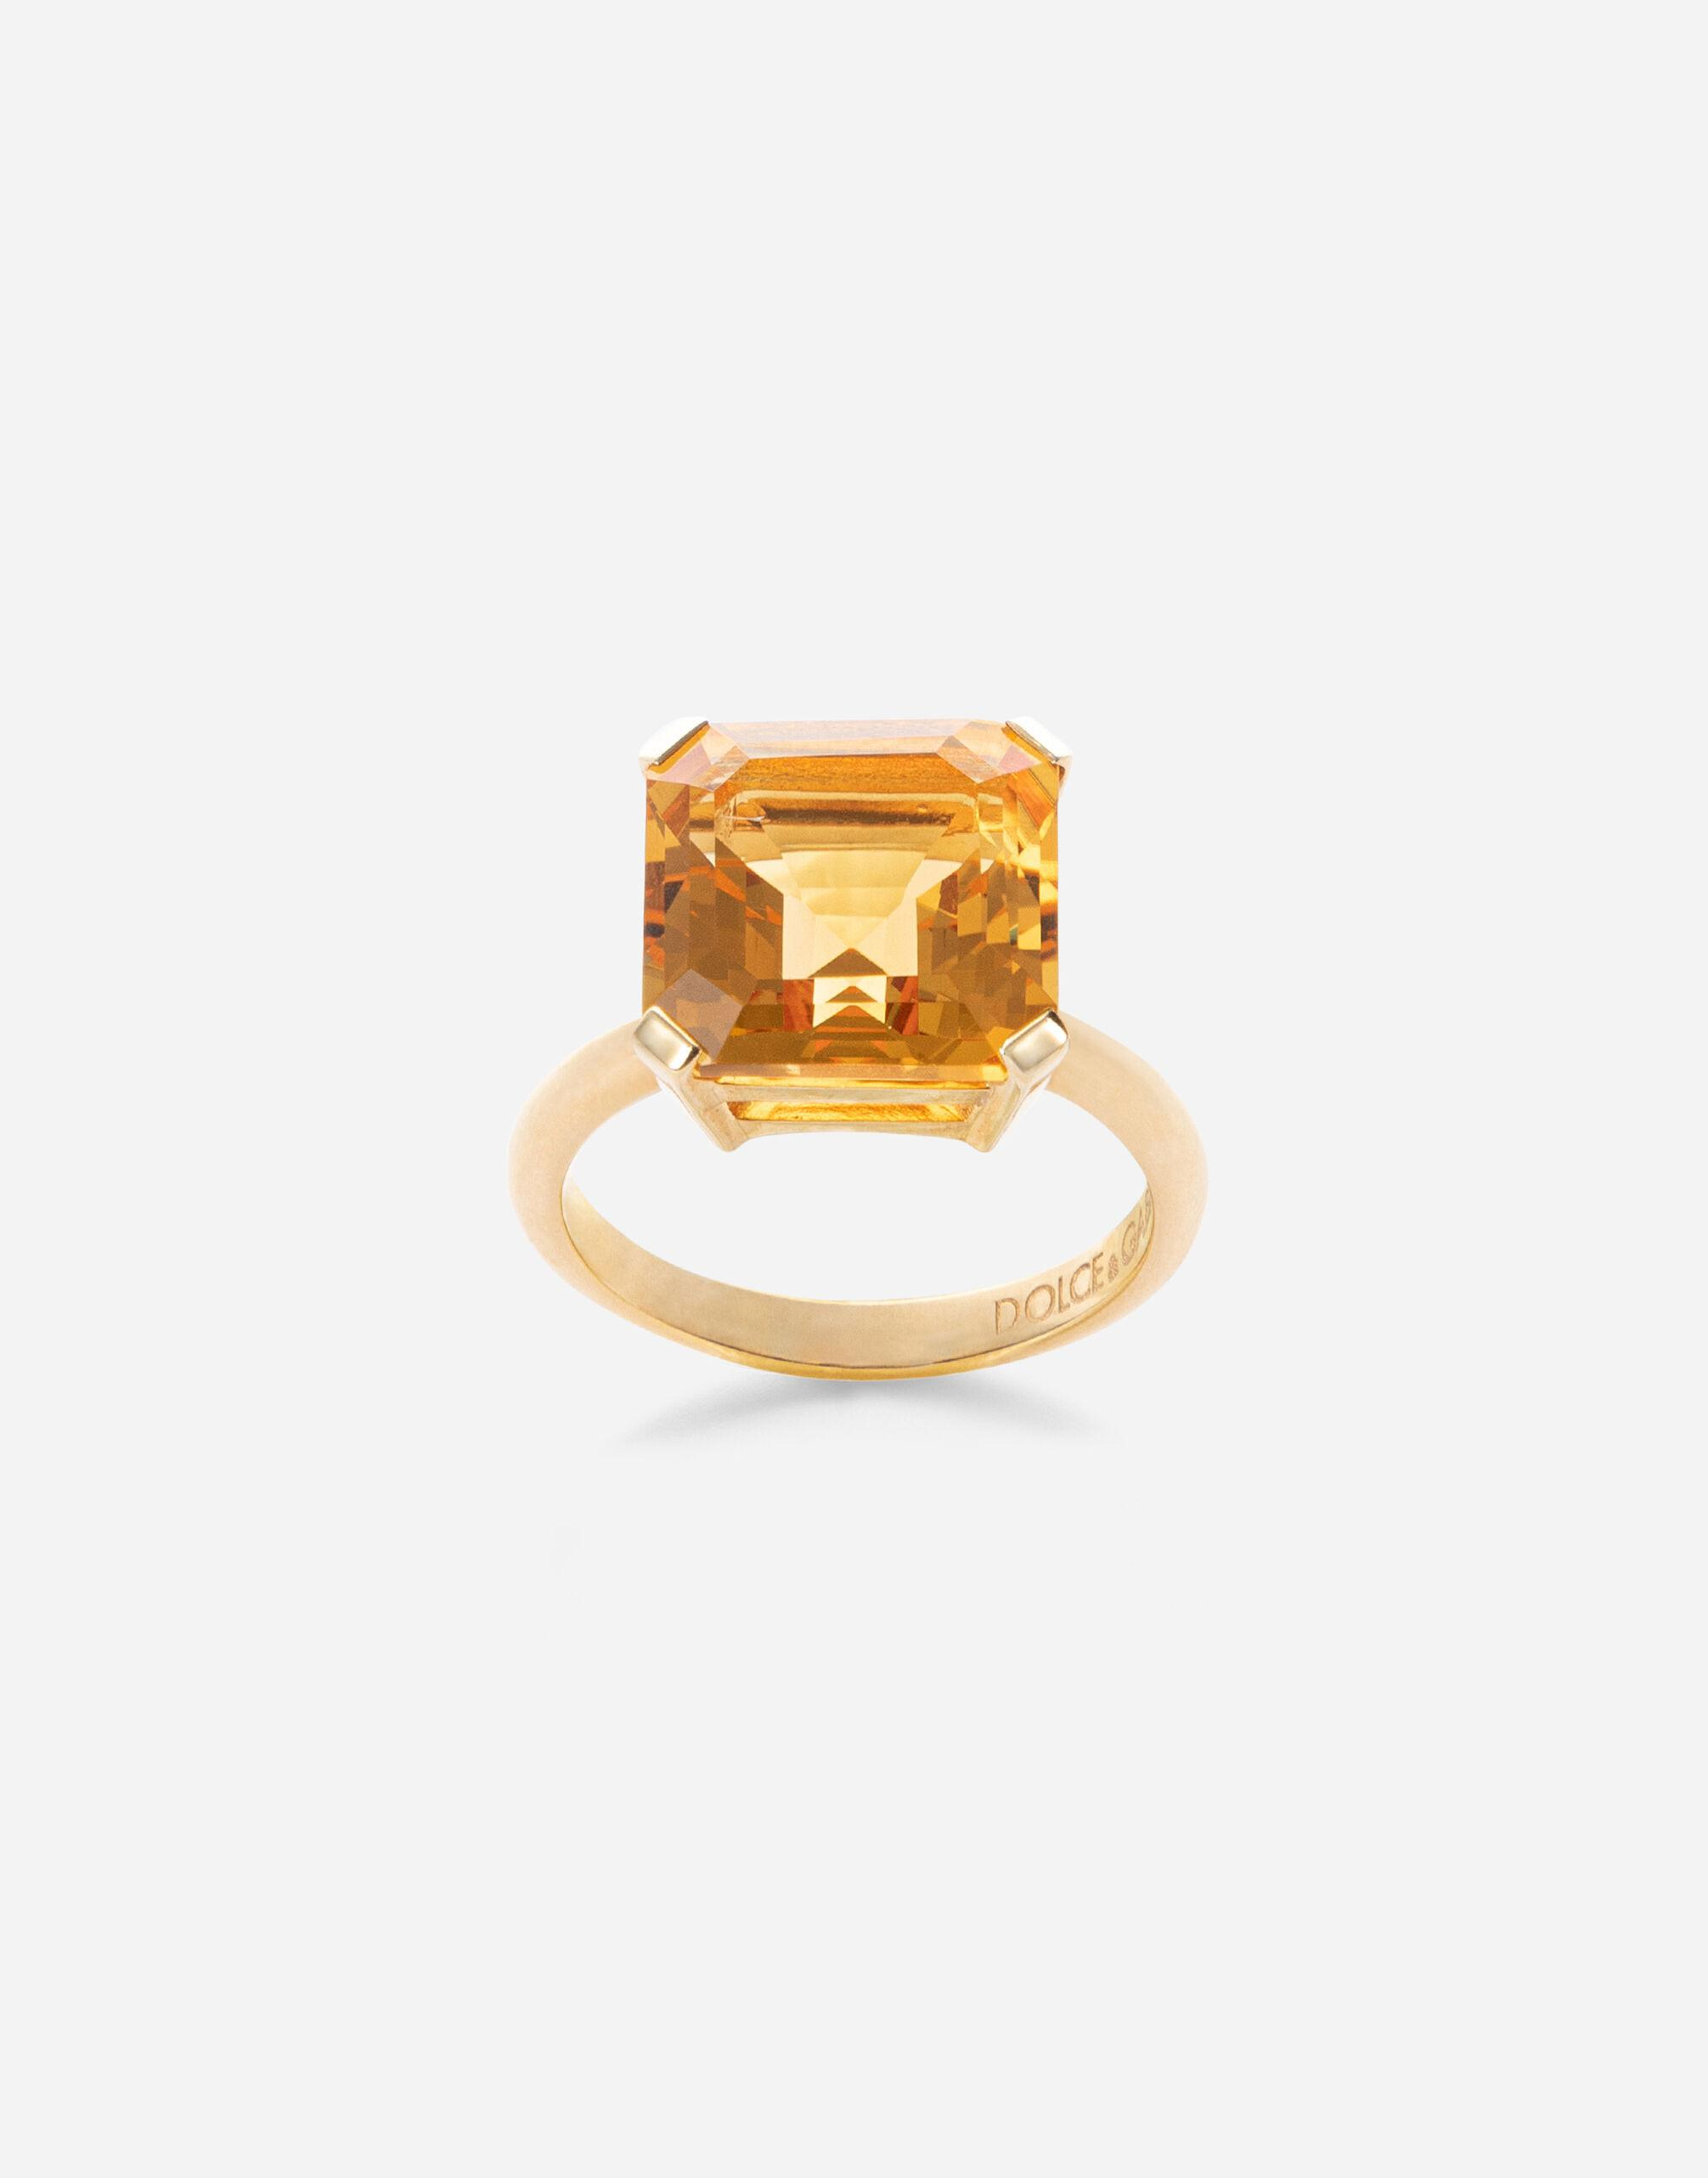 Anna ring in yellow 18kt gold with citrine